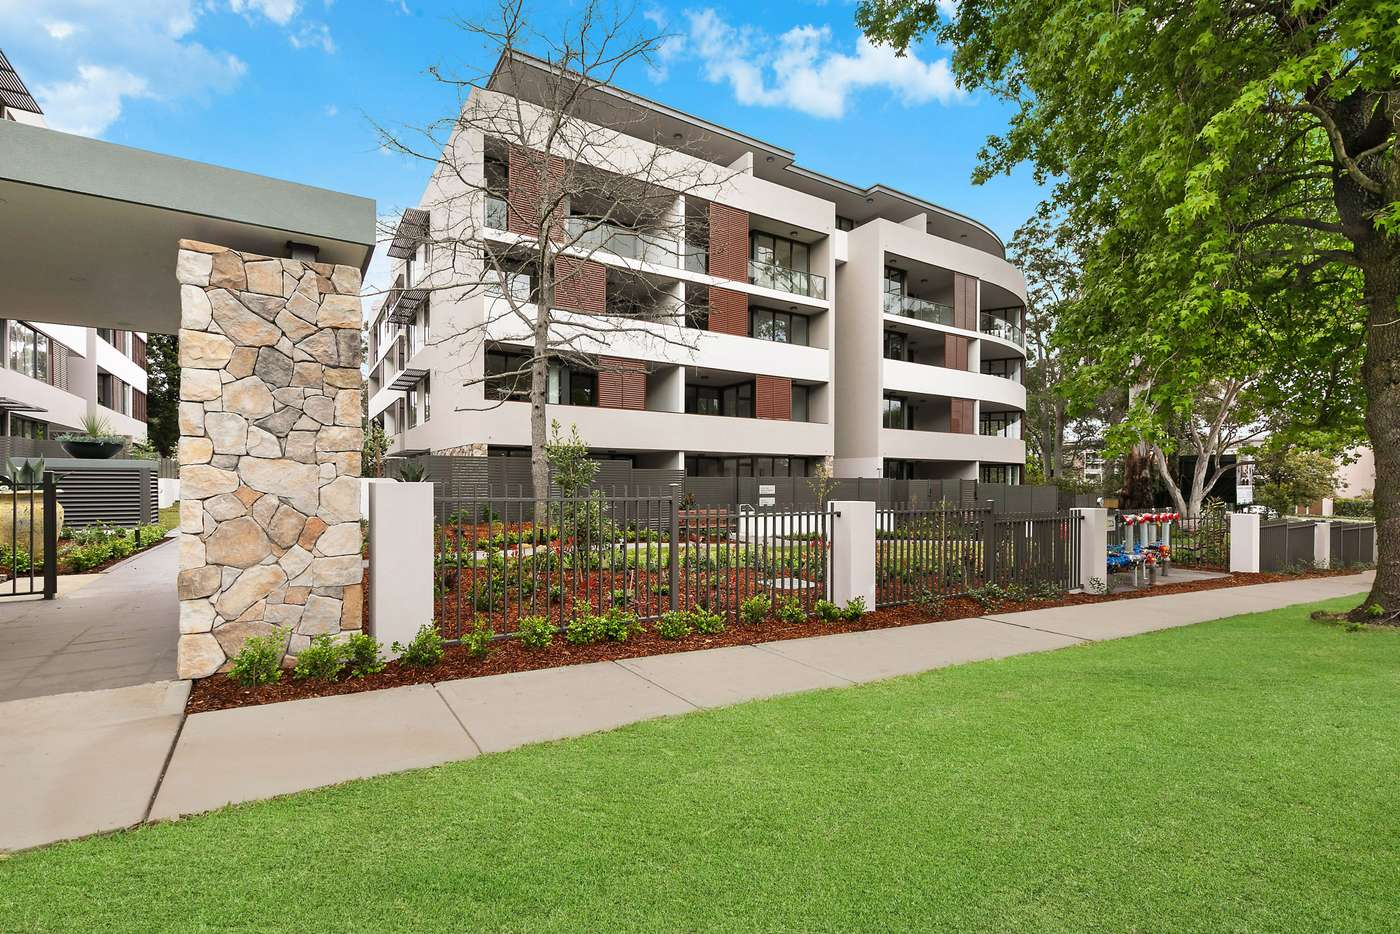 Main view of Homely apartment listing, A105/124-128 Killeaton Street, St Ives NSW 2075